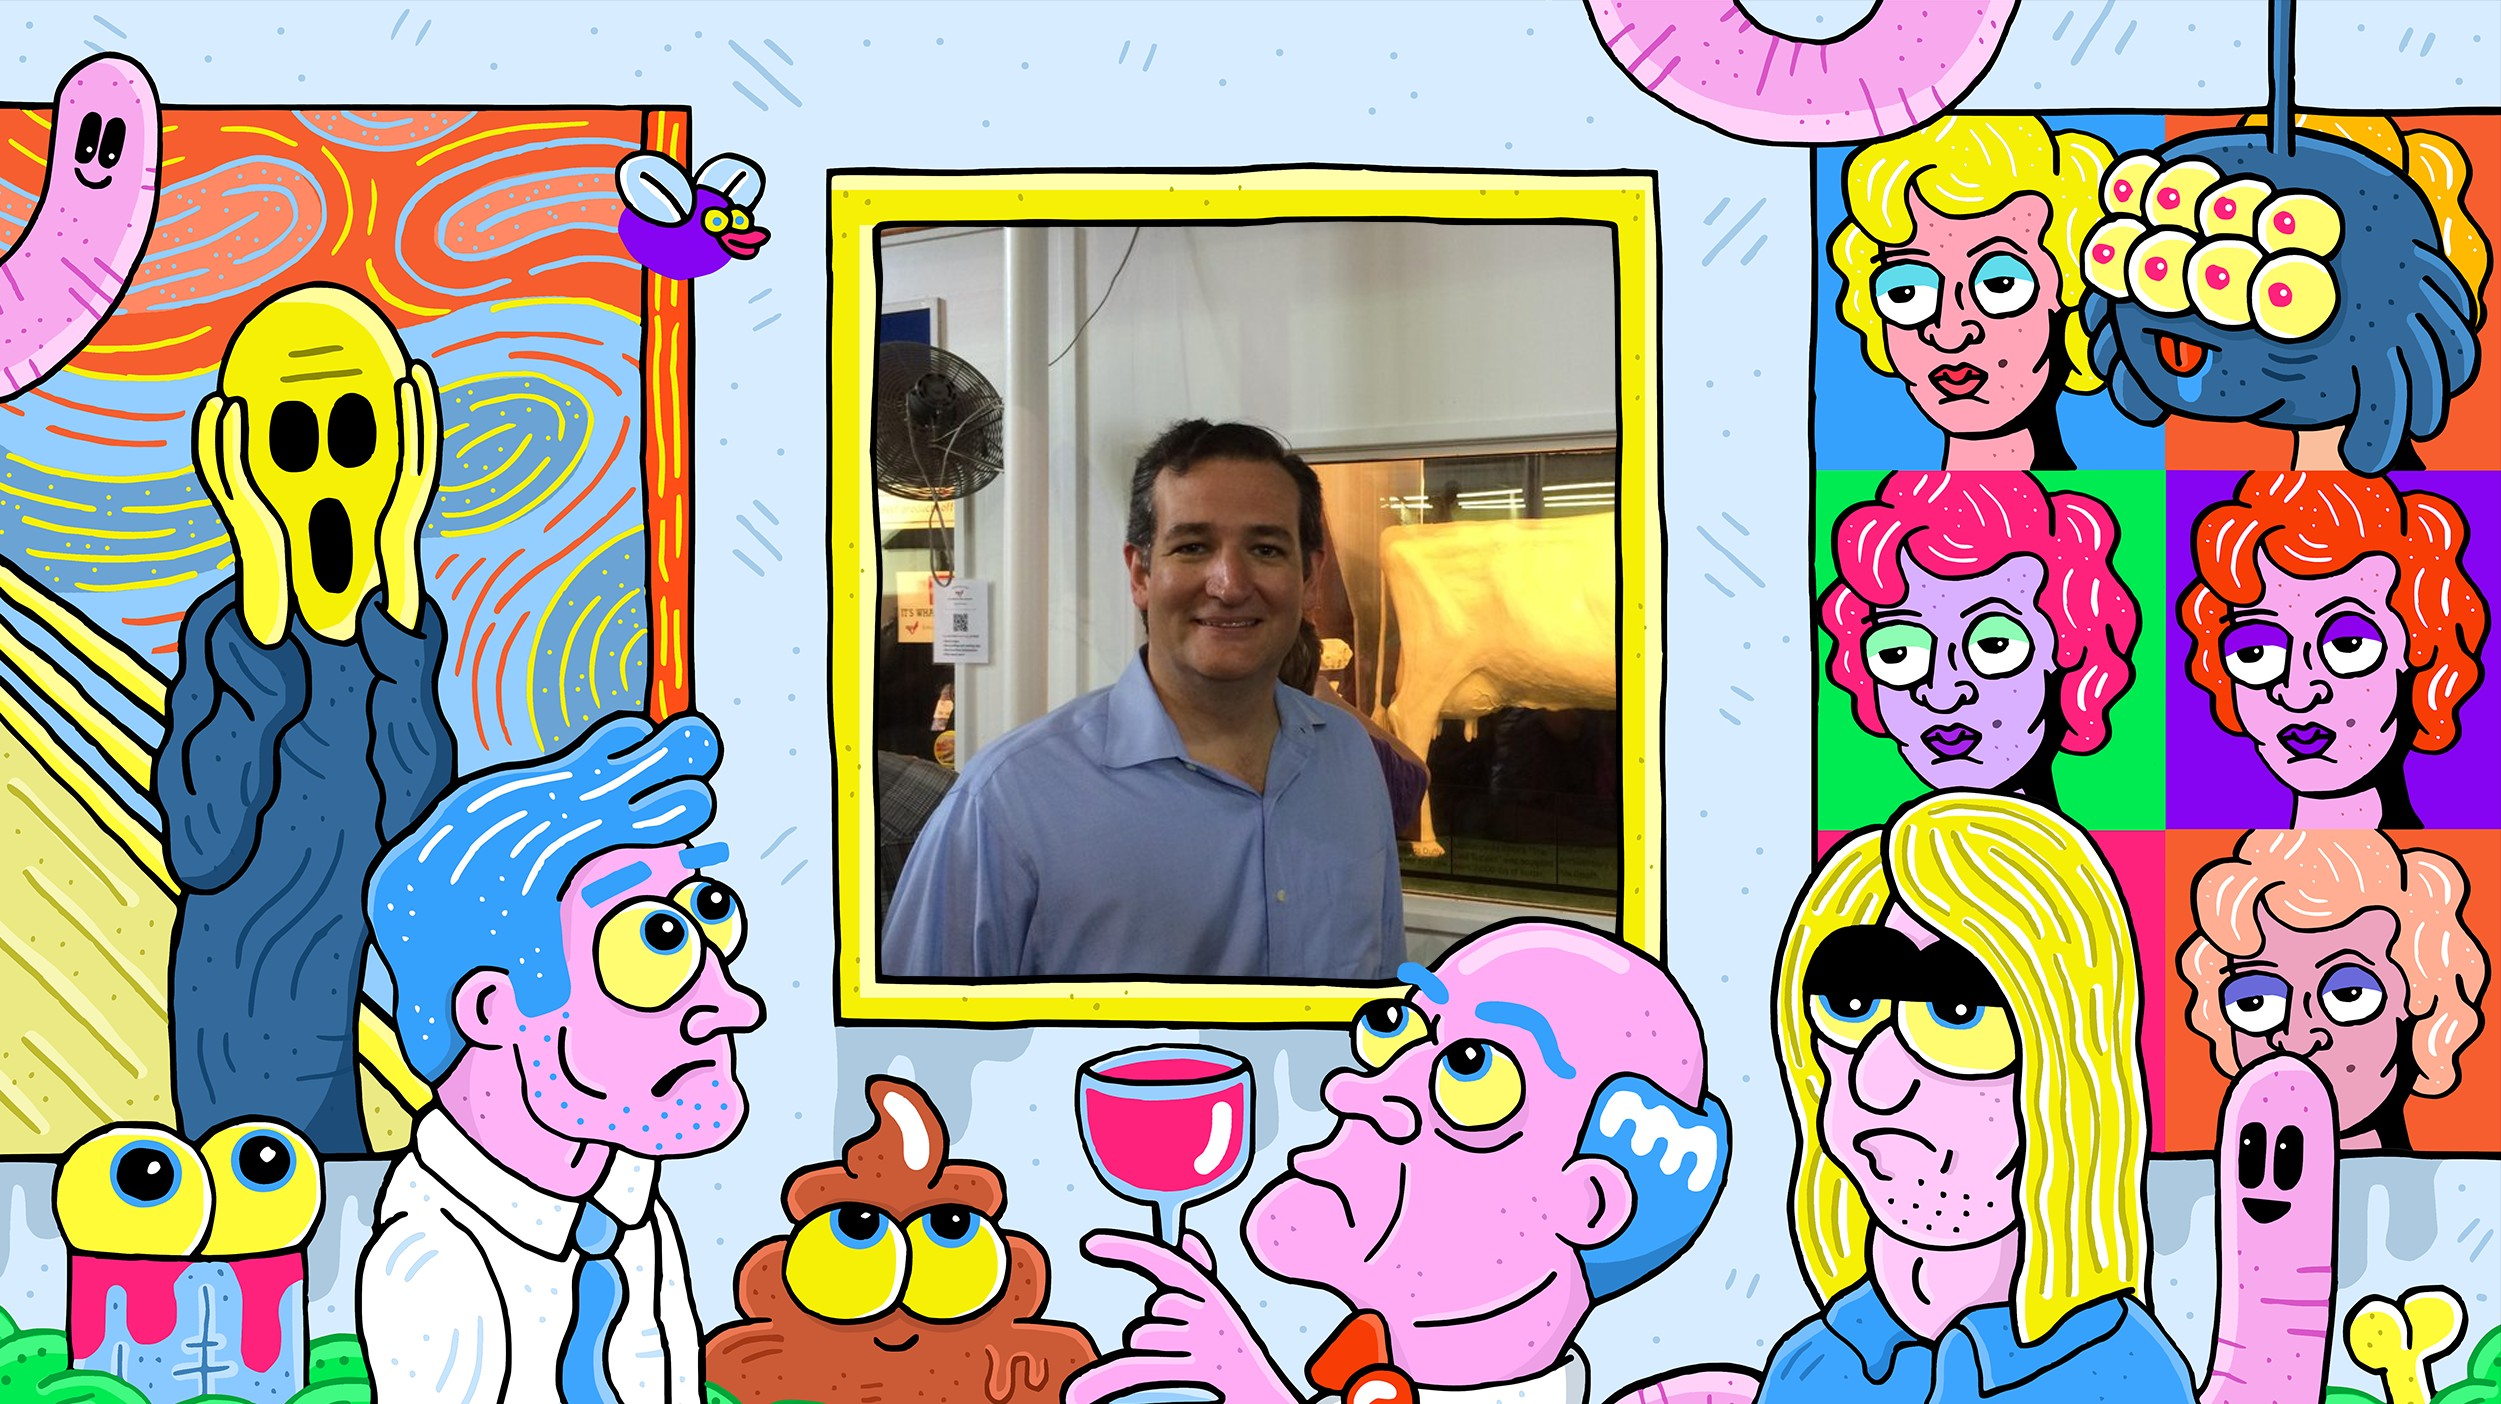 Tweets Of Our Time Ted Cruz And The Butter Cow Vice